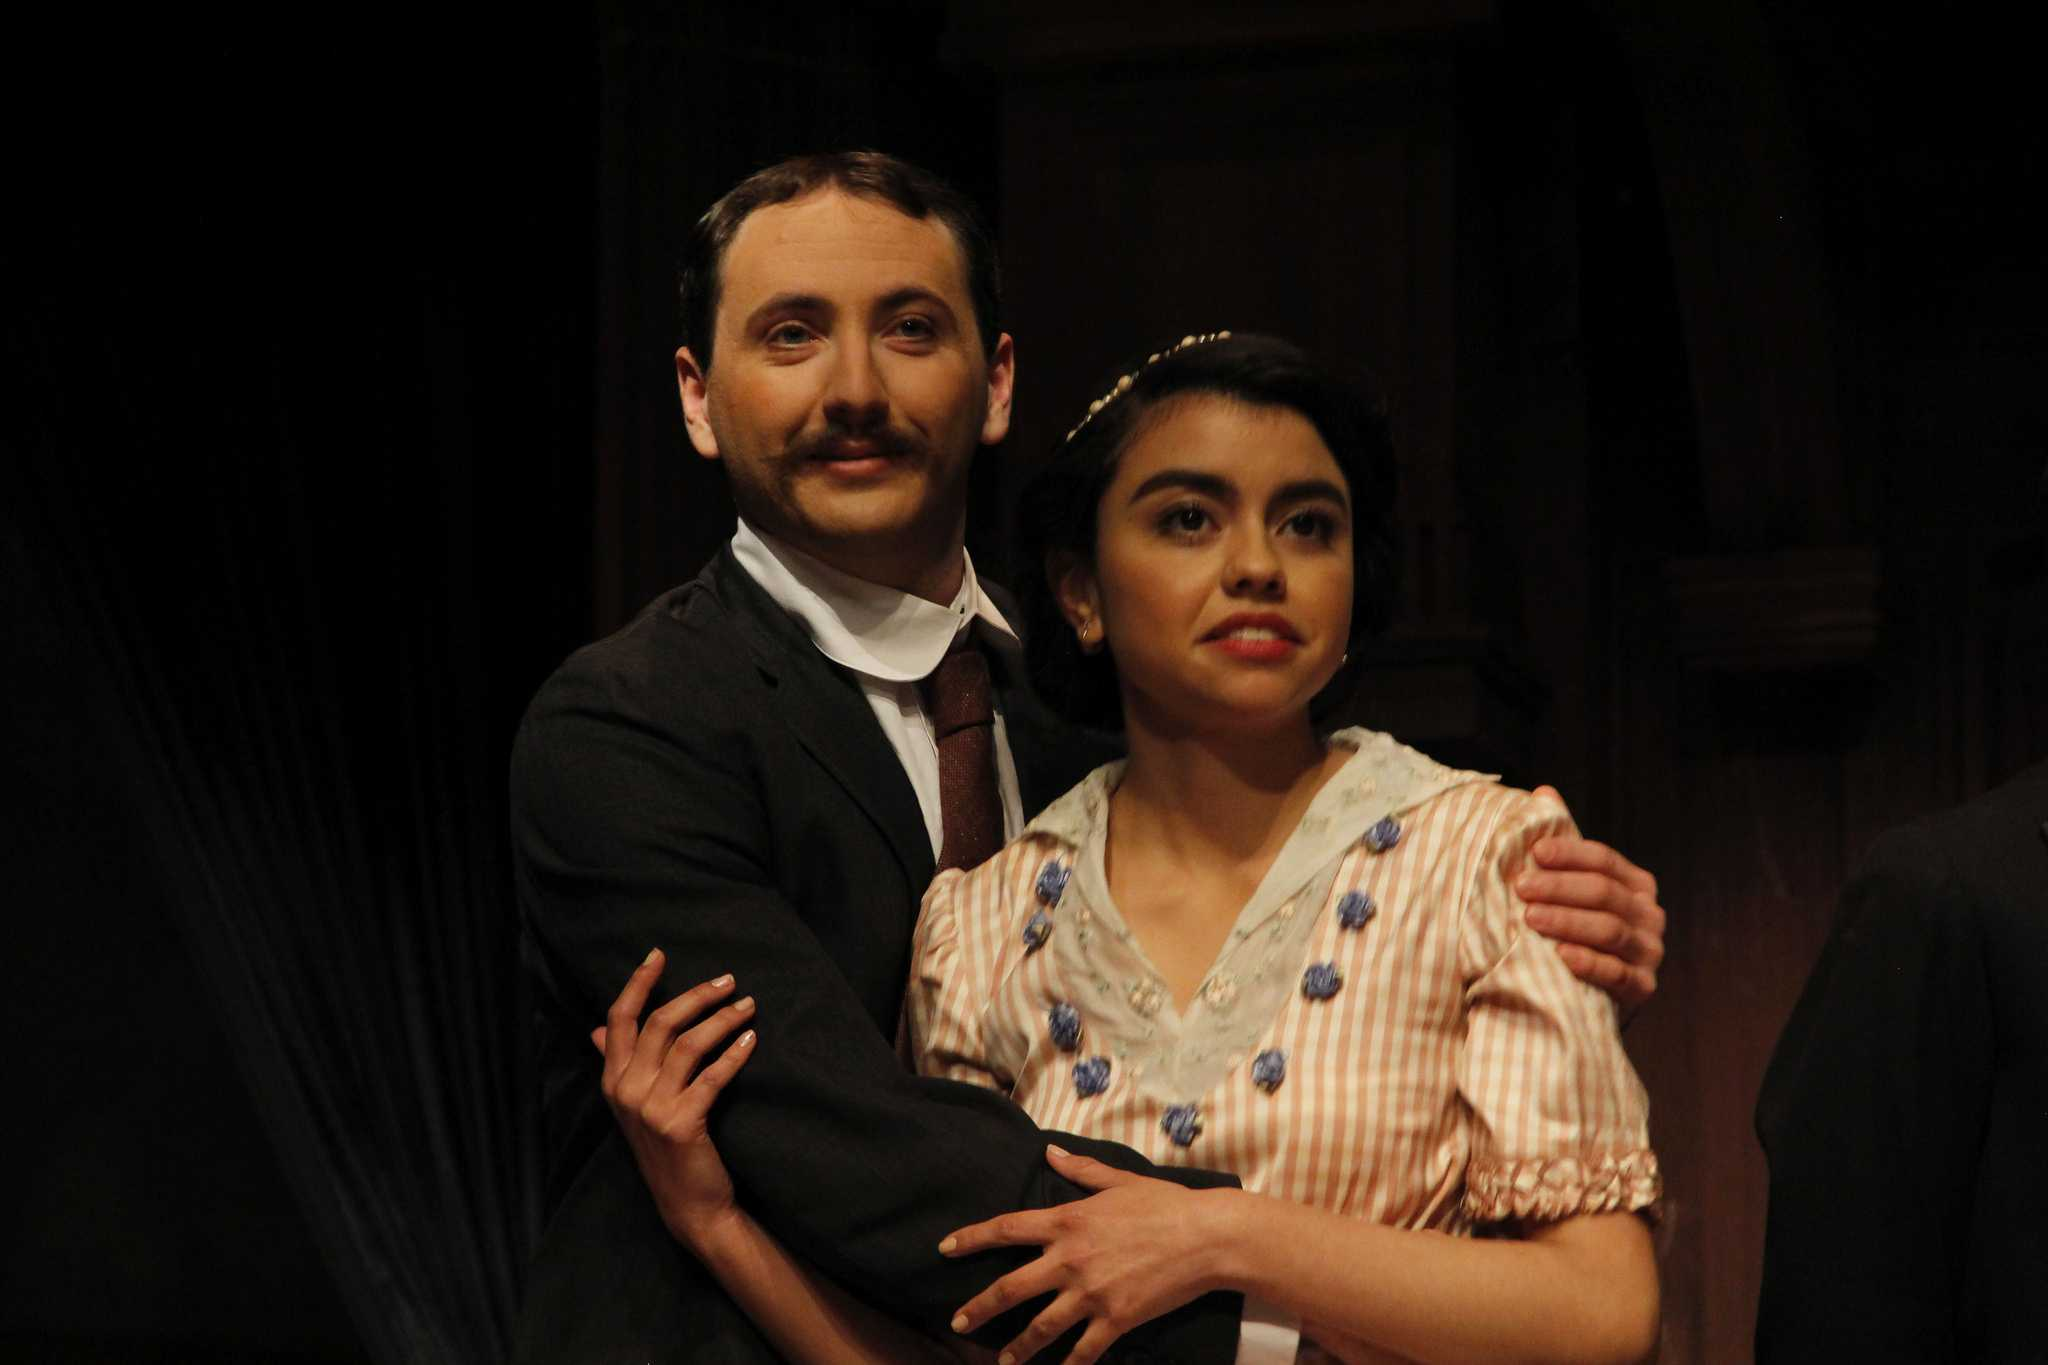 Shakespeare's Much Ado About Nothing welcomes the roaring '20s